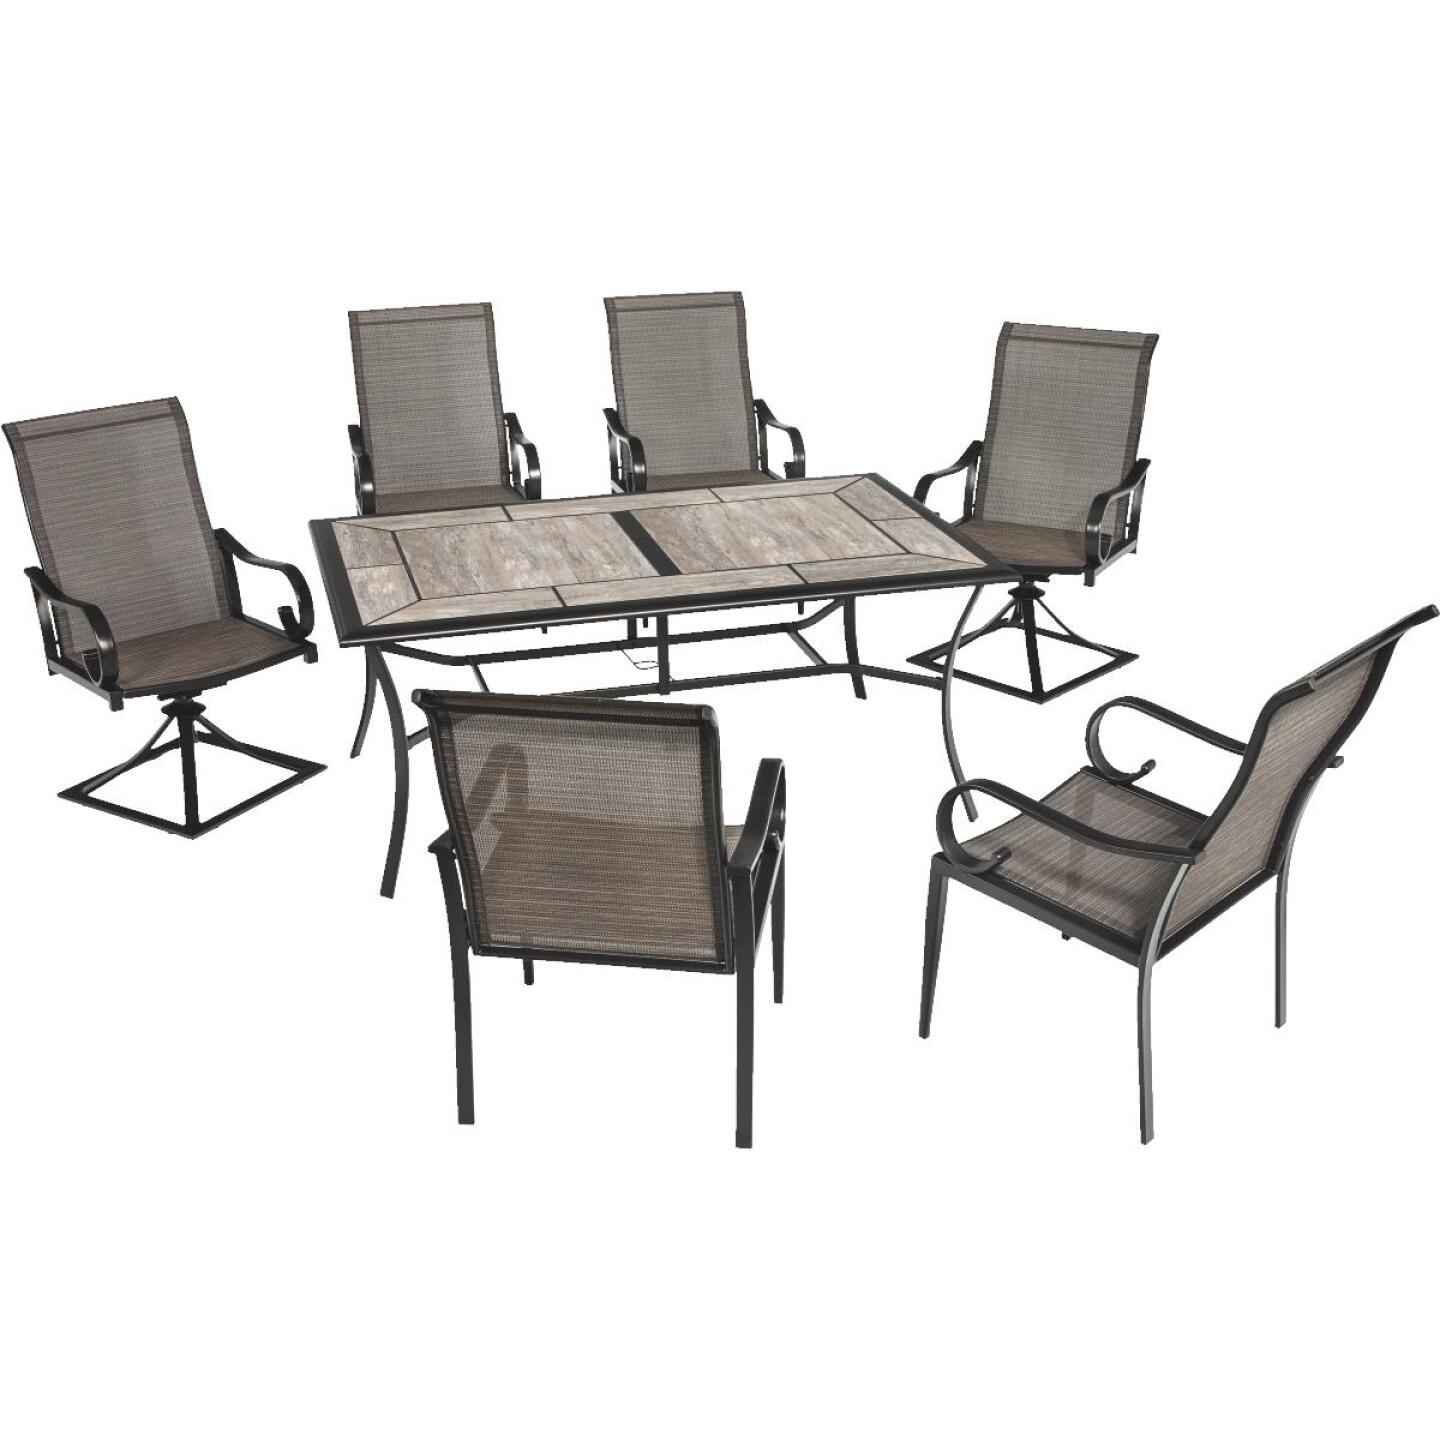 Outdoor Expressions Berkshire 7-Piece Dining Set Image 29